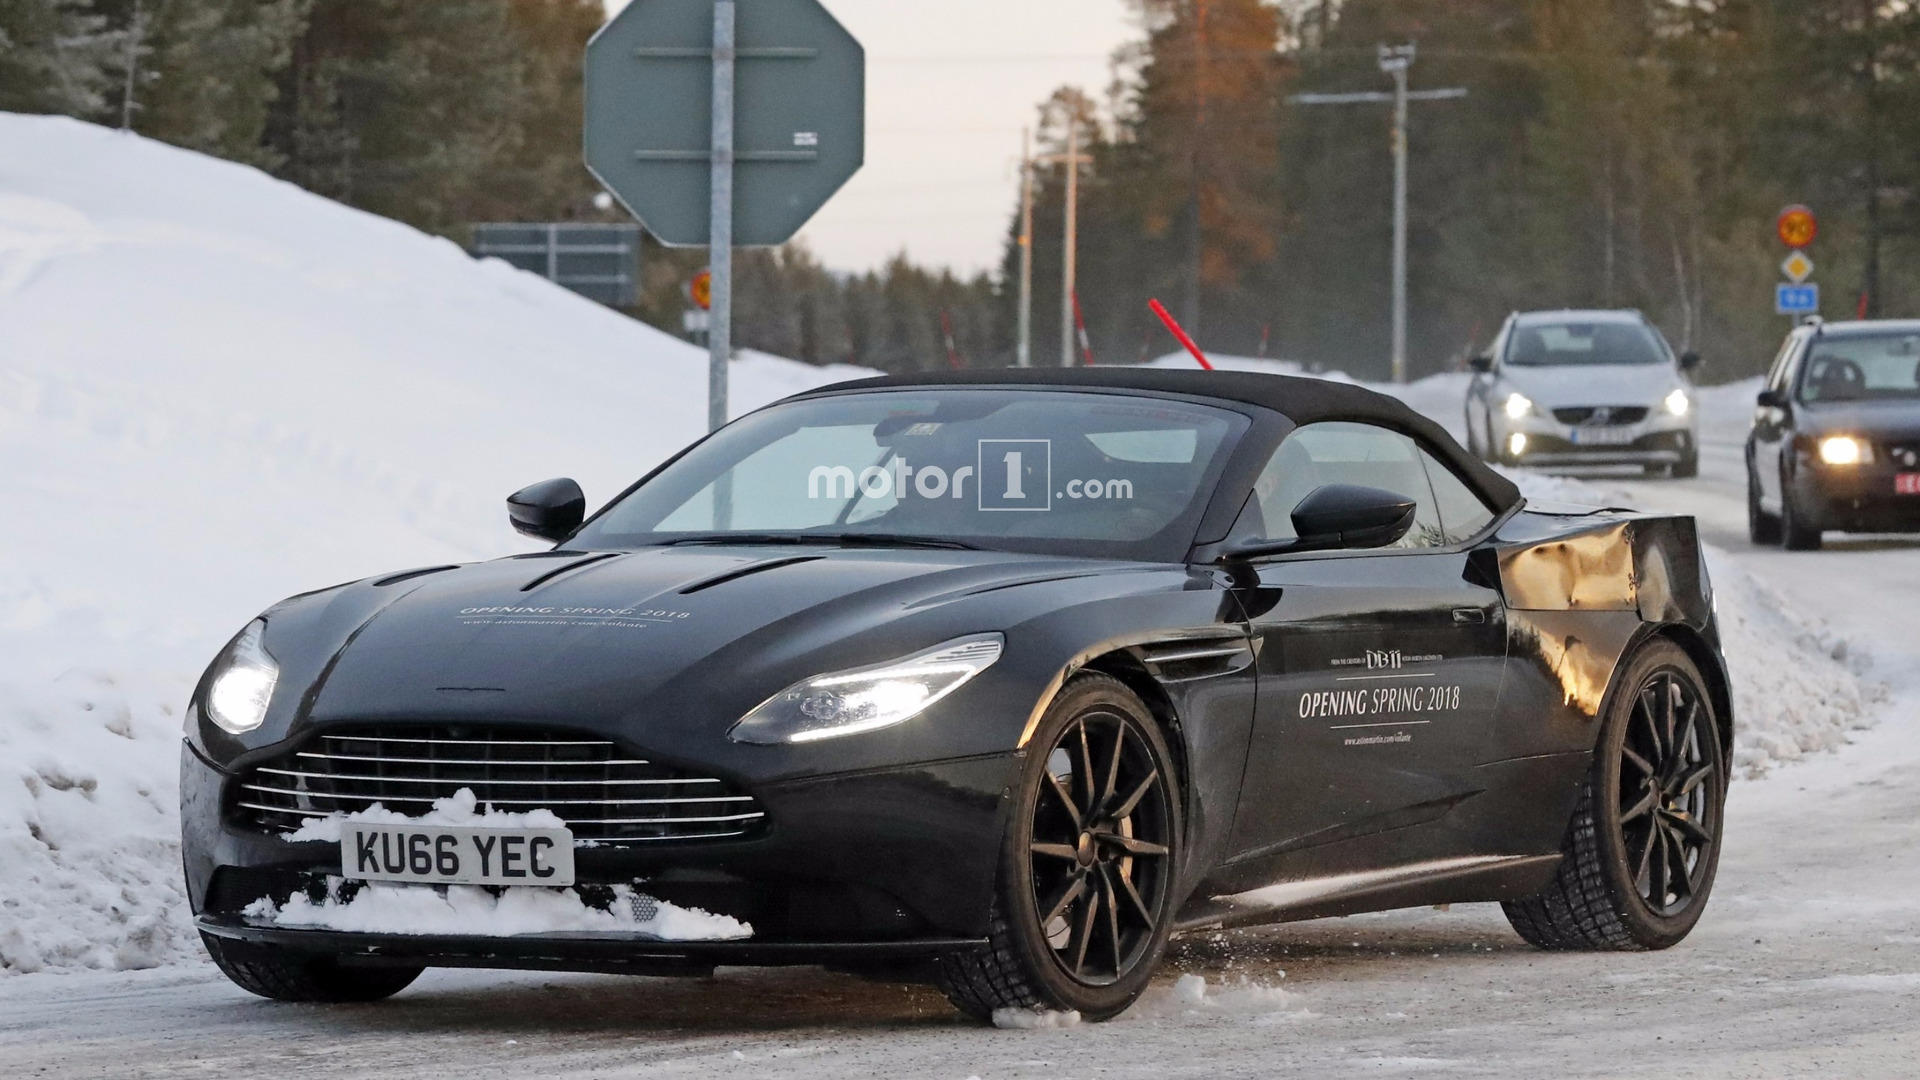 2018-aston​-martin-db​11-volante​-spy-photo